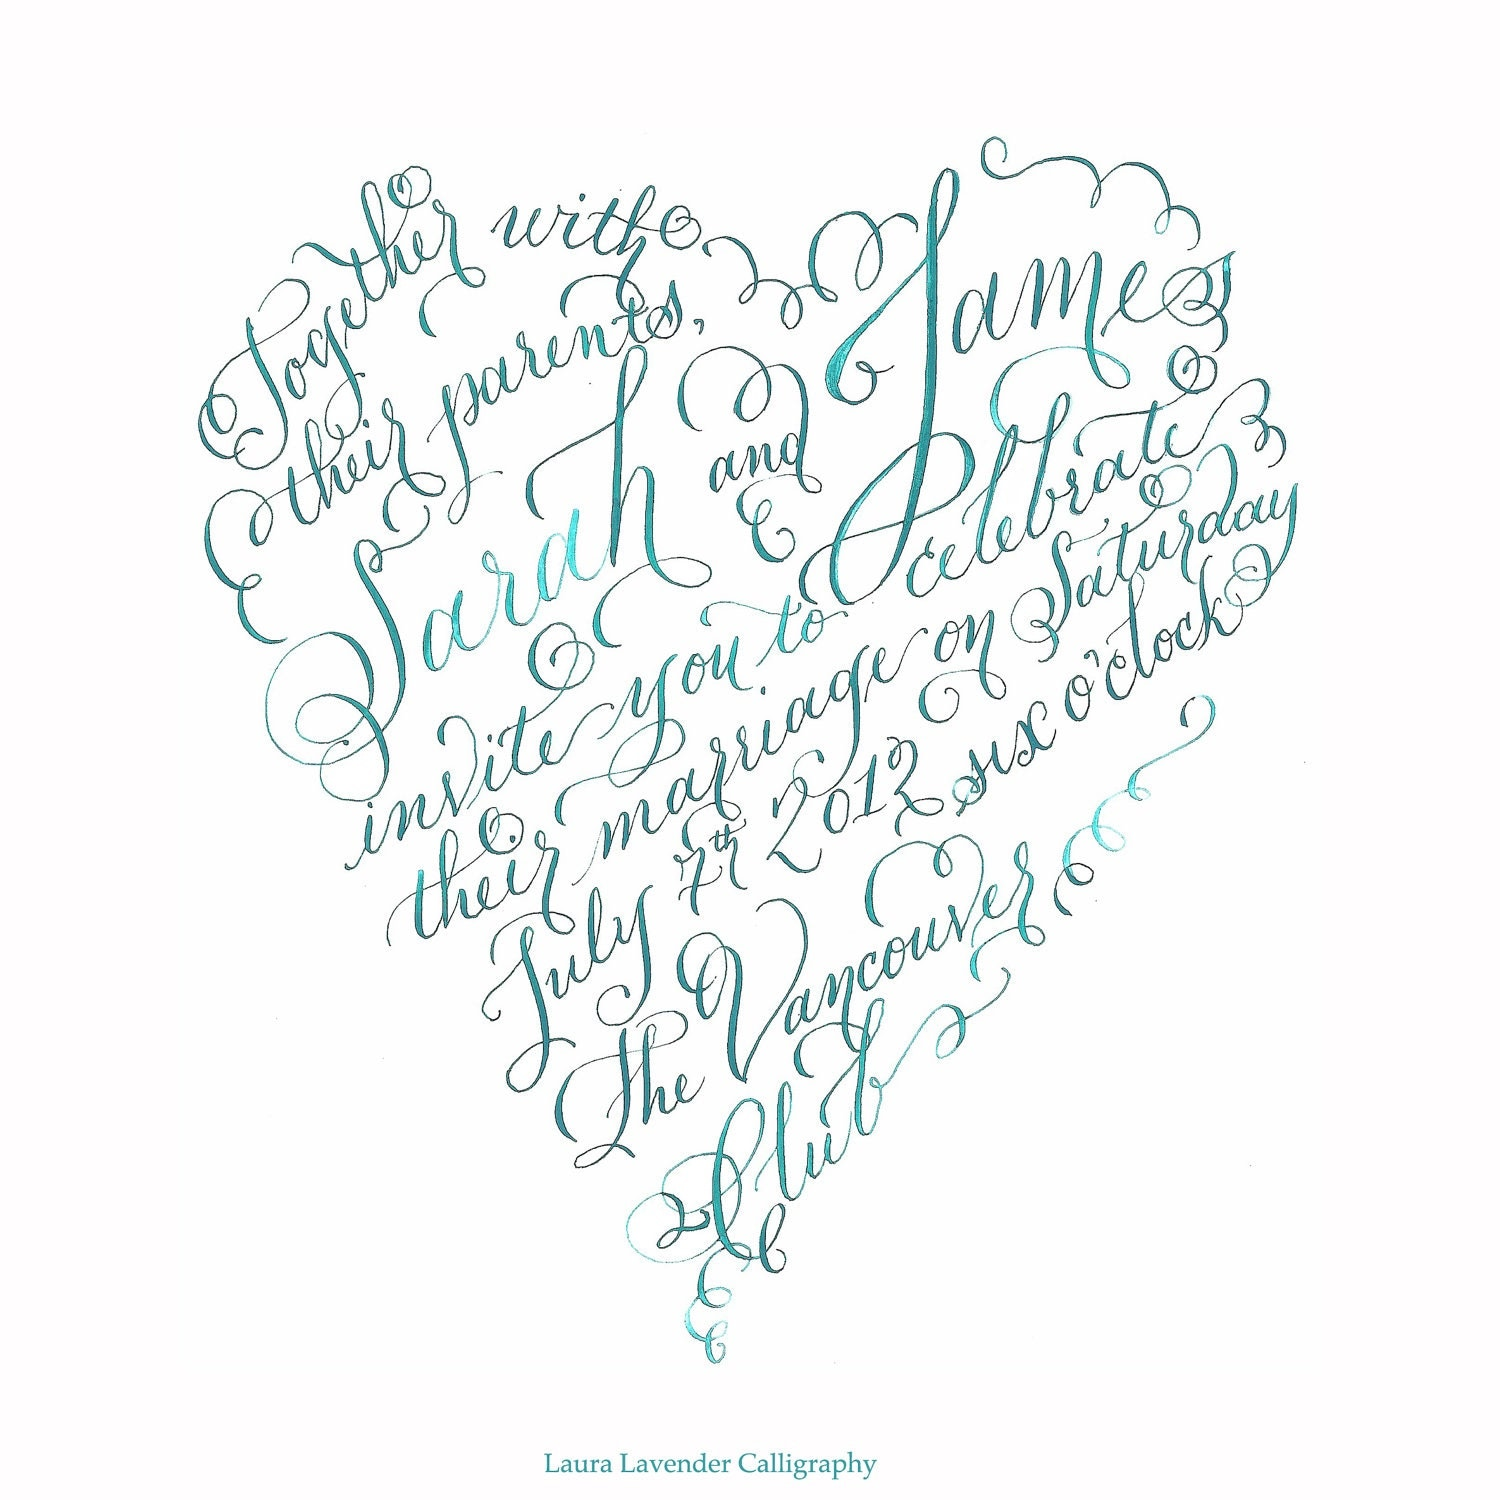 I heart calligraphy by lavendercalligraphy